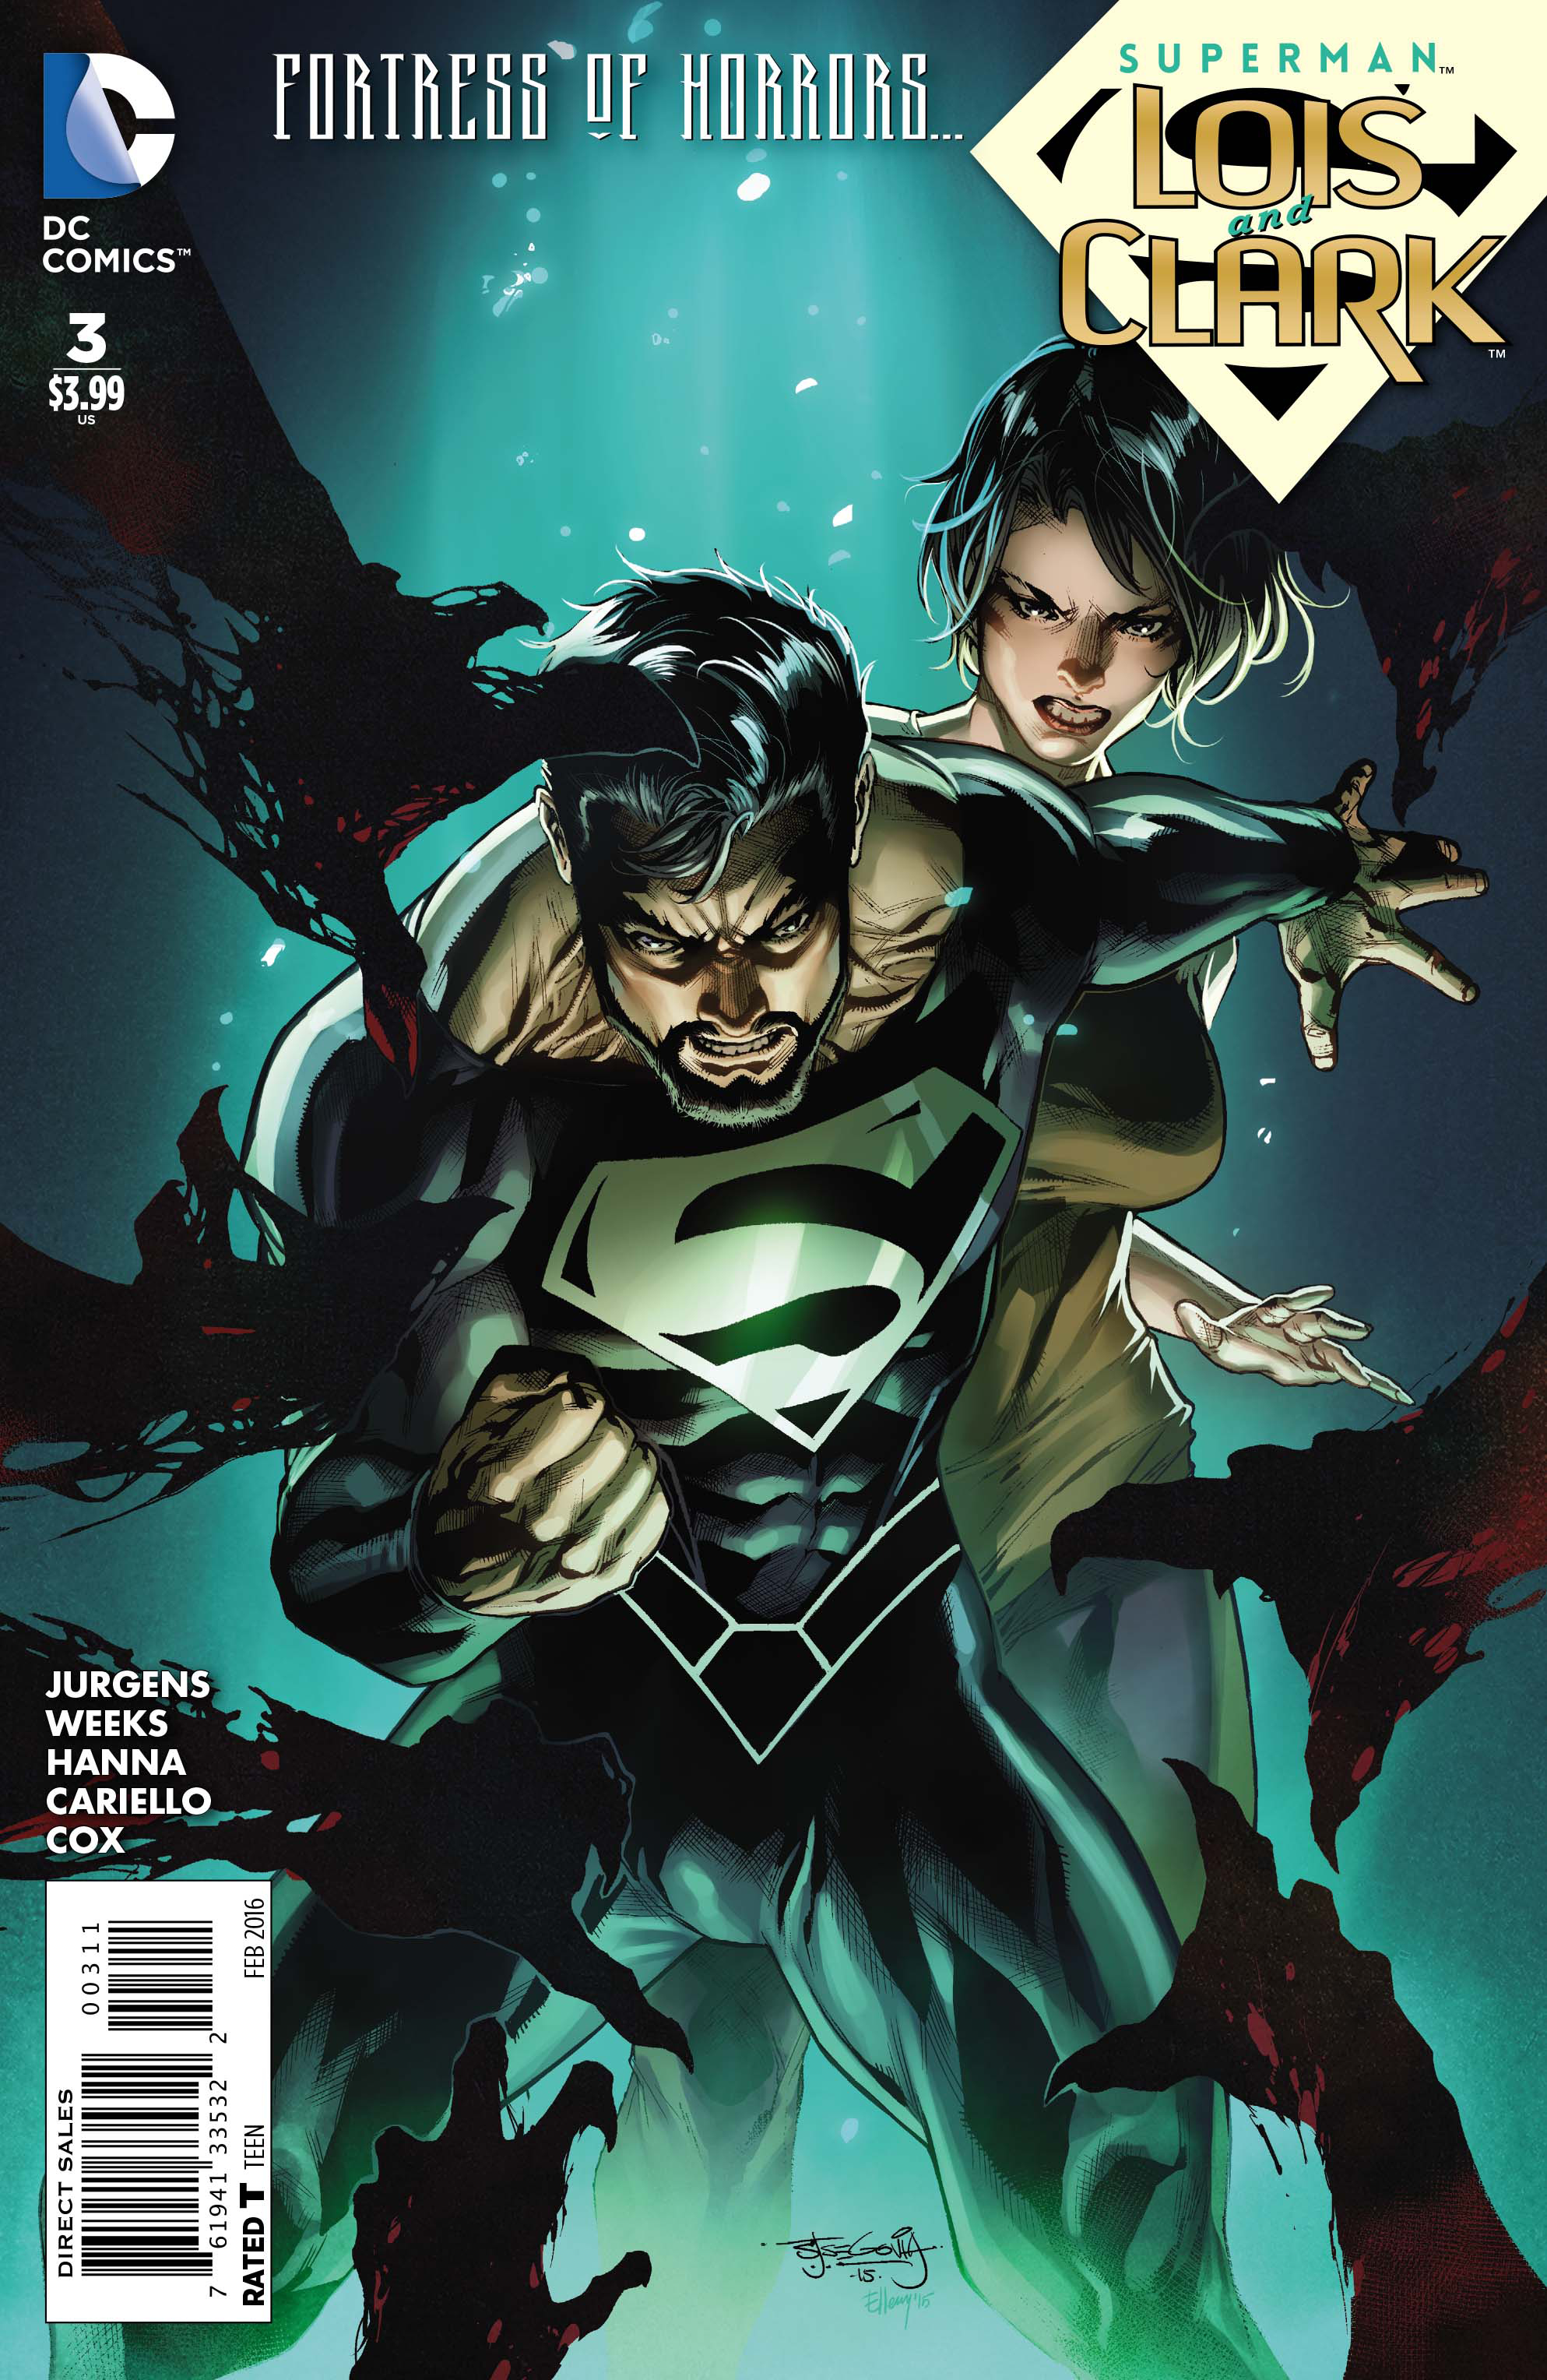 SUPERMAN LOIS AND CLARK #3